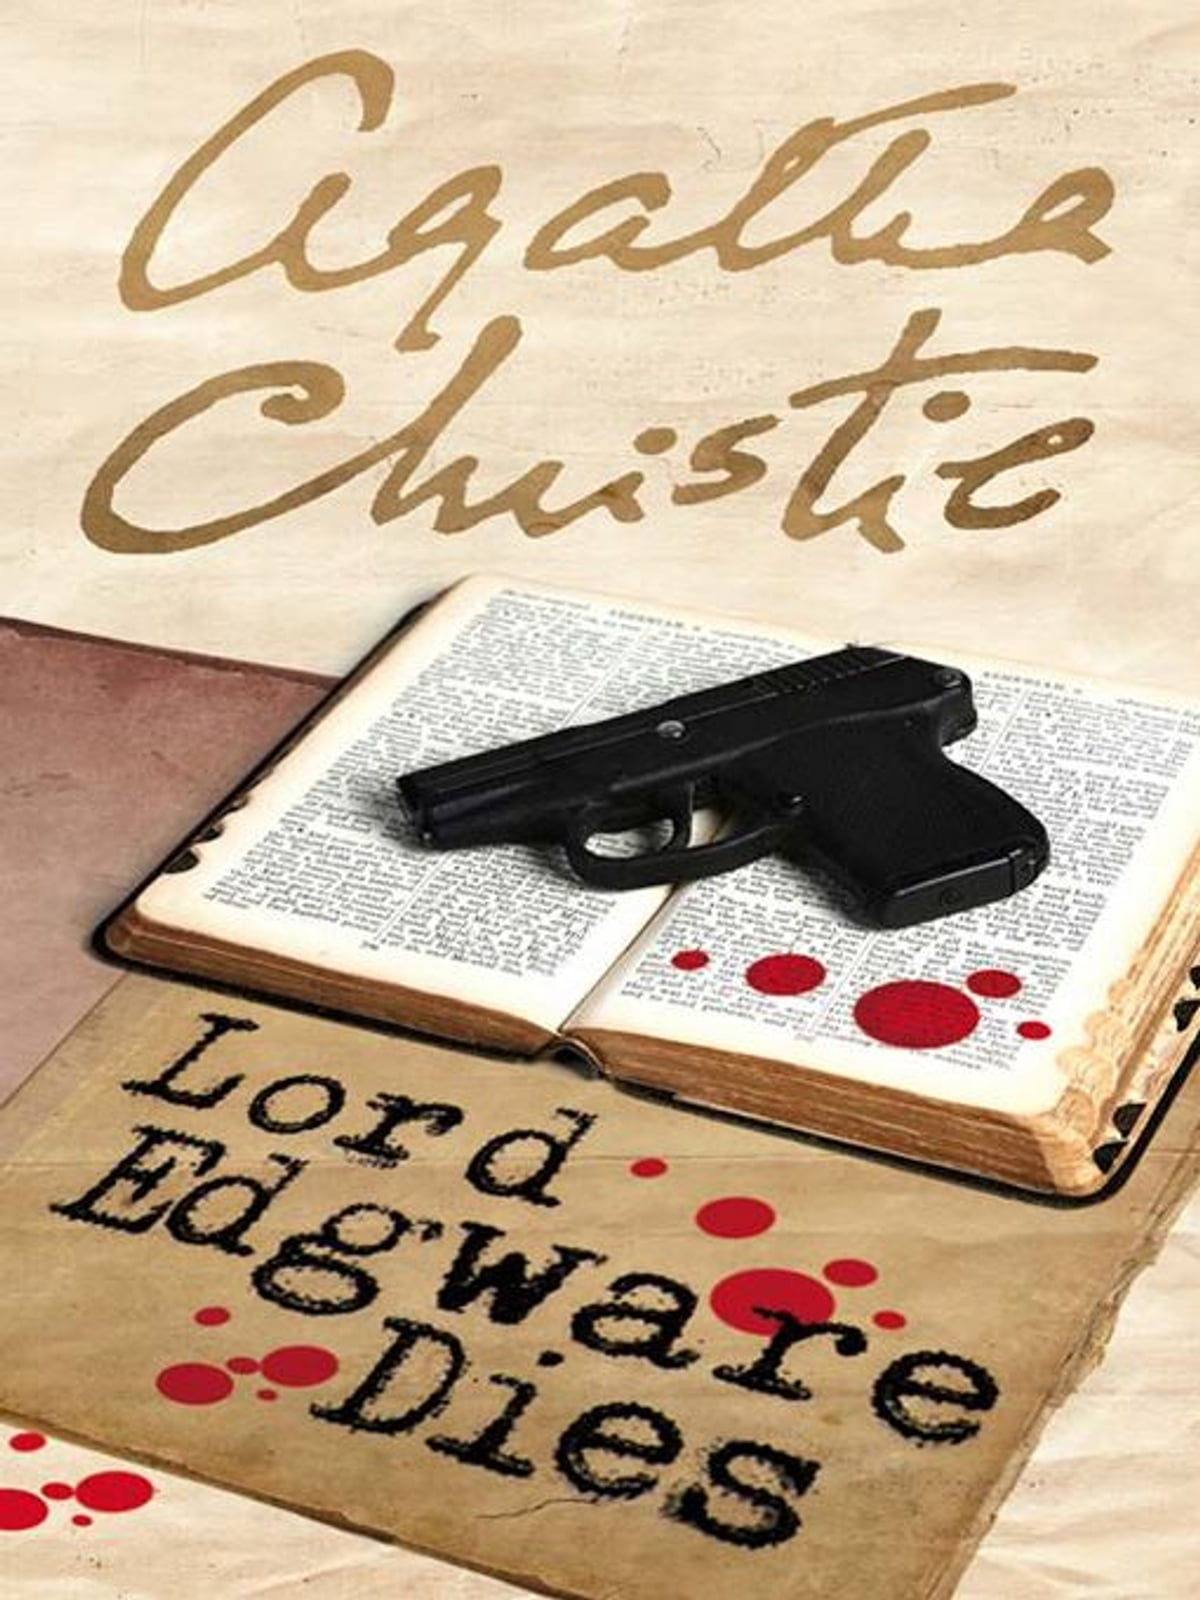 Lord edgware dies ebook by agatha christie 9780061748653 lord edgware dies ebook by agatha christie 9780061748653 rakuten kobo fandeluxe Ebook collections